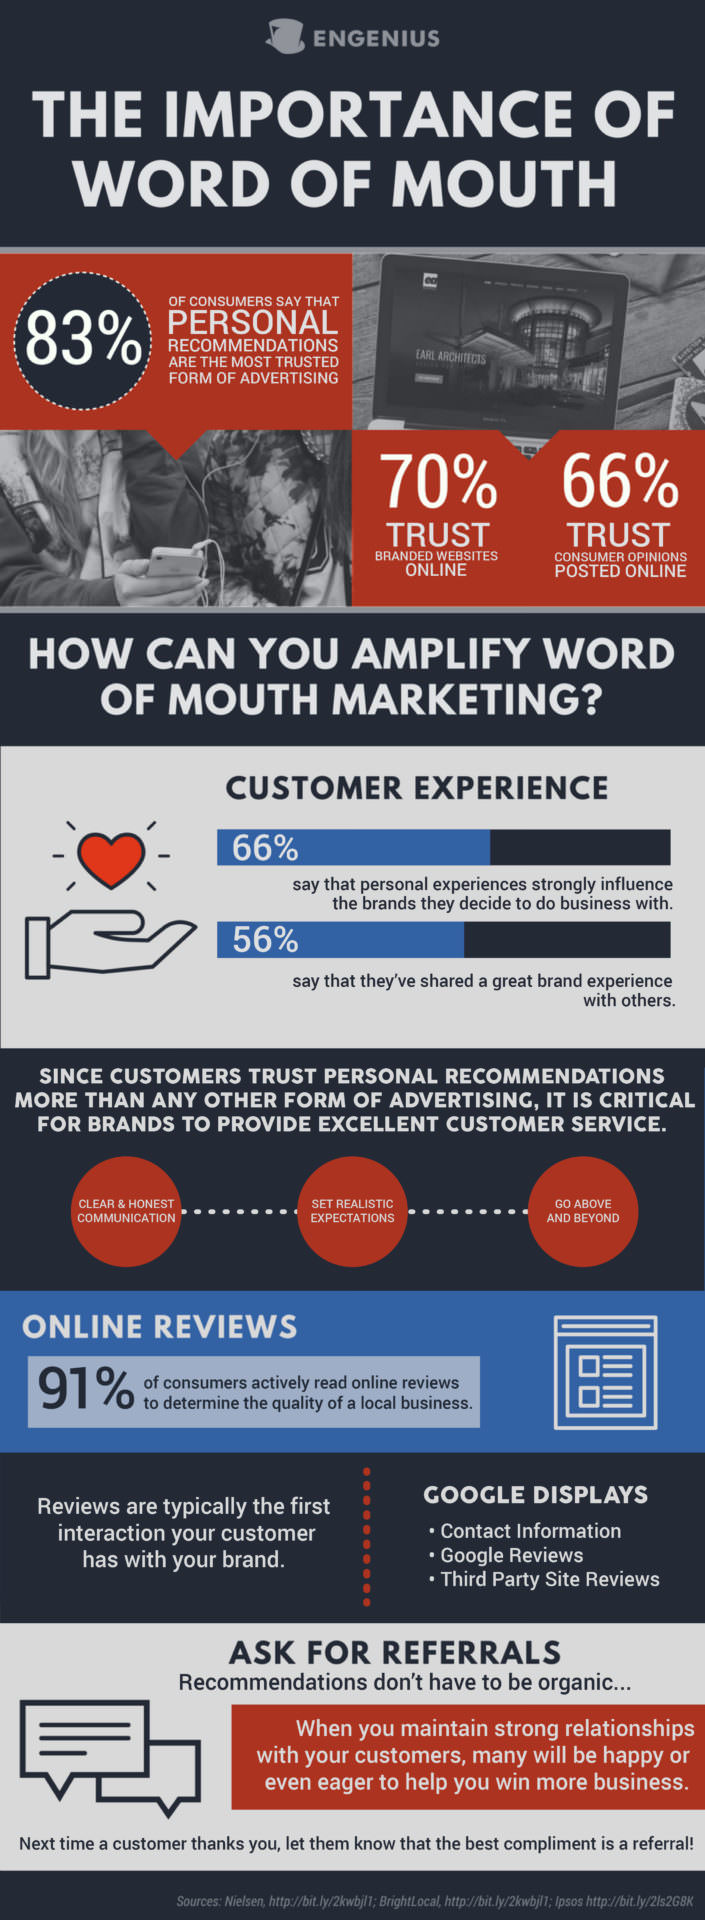 Infographic on how to amplify your word of mouth marketing